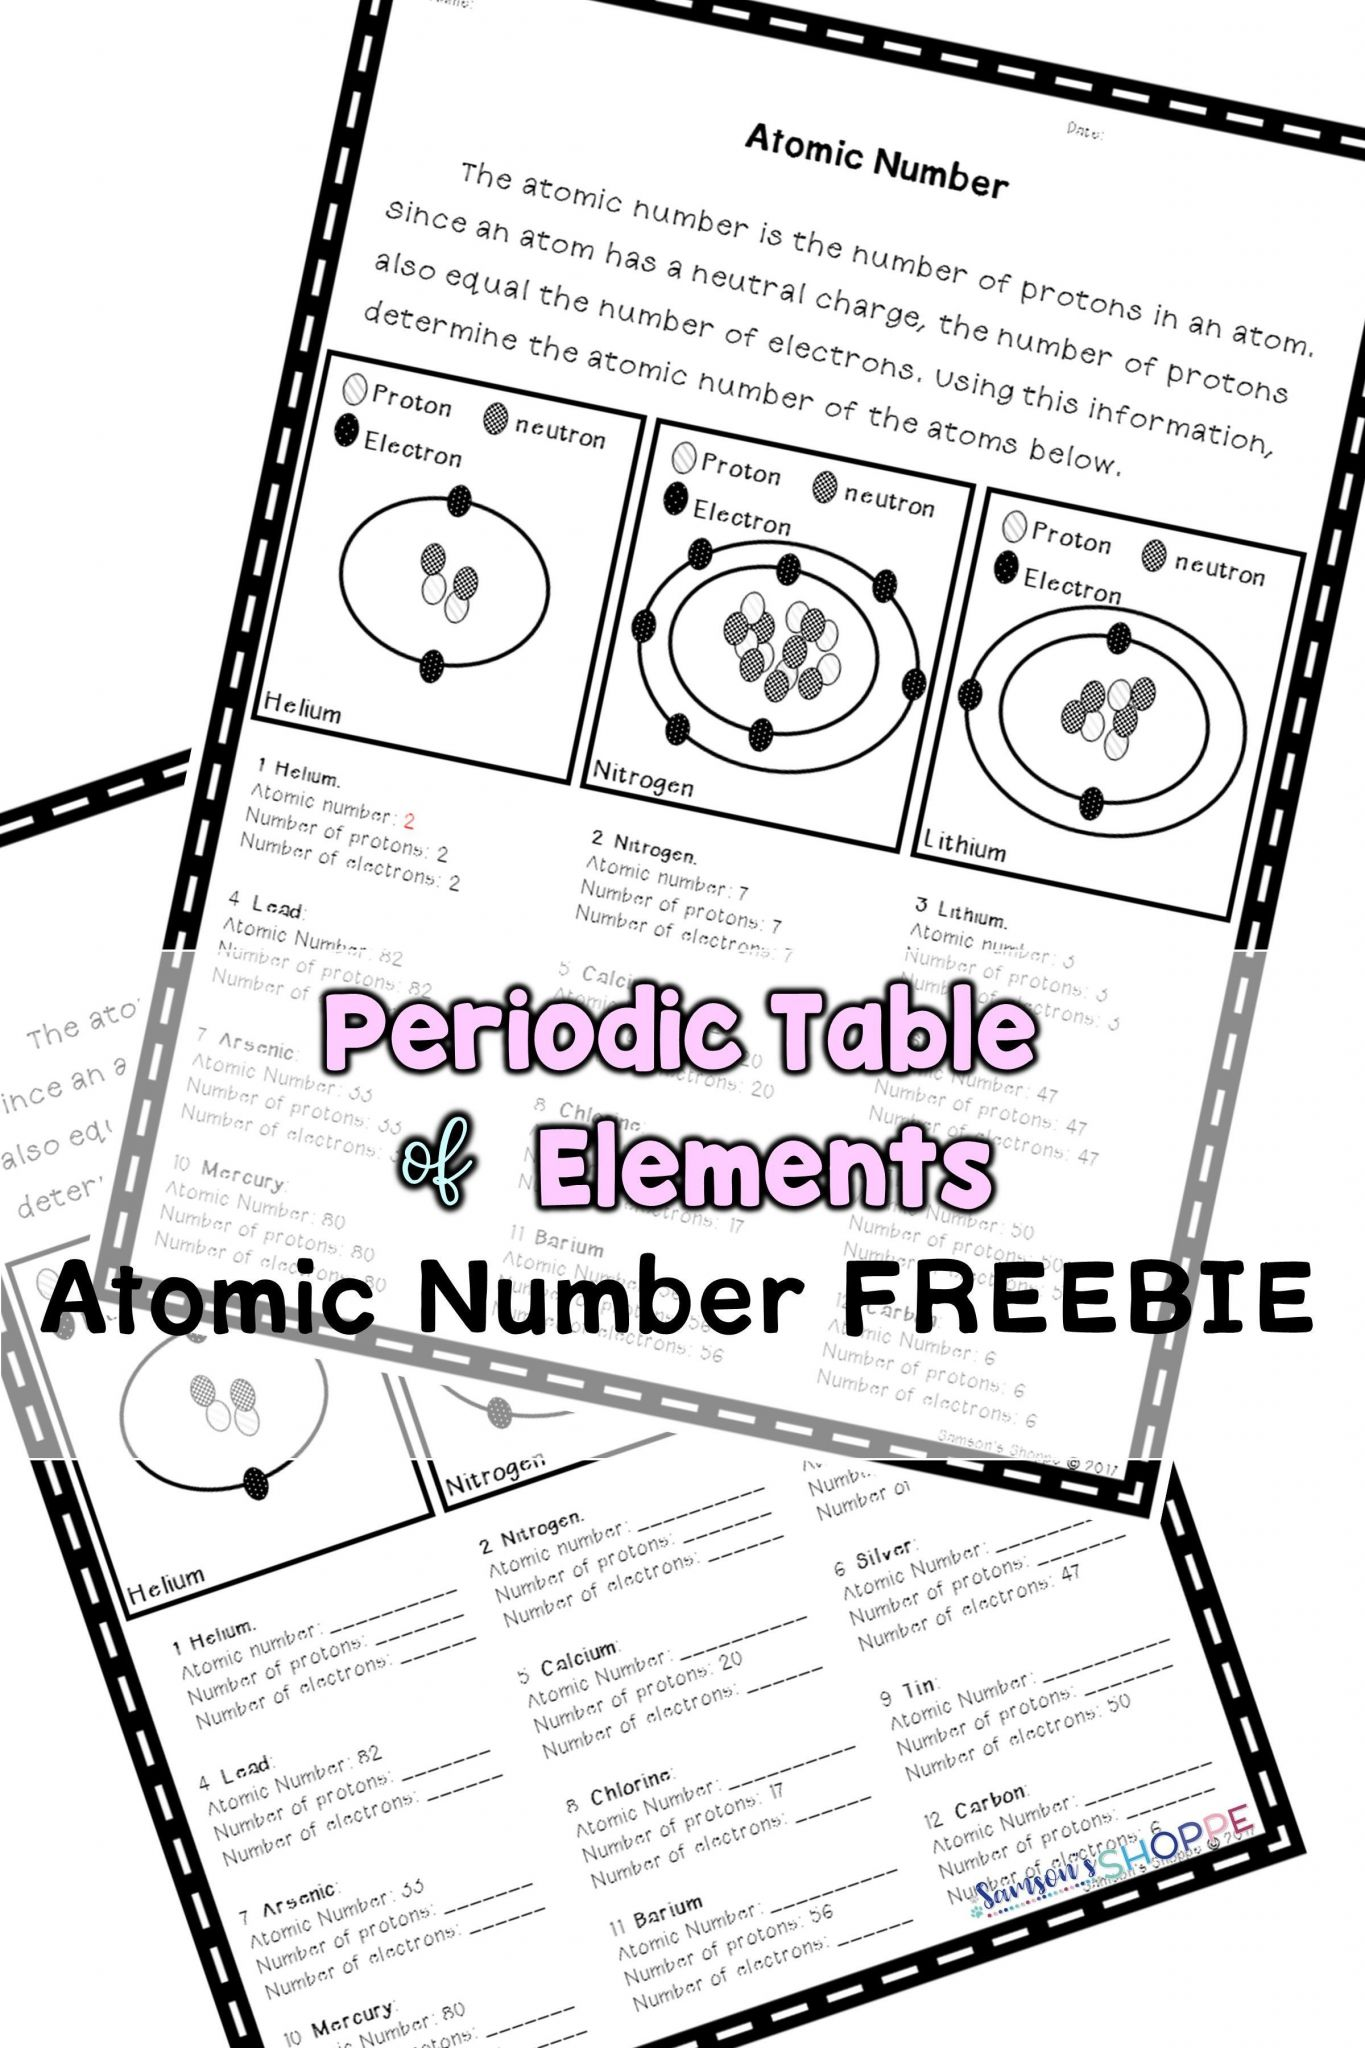 How To Read The Periodic Table Protons Neutrons And